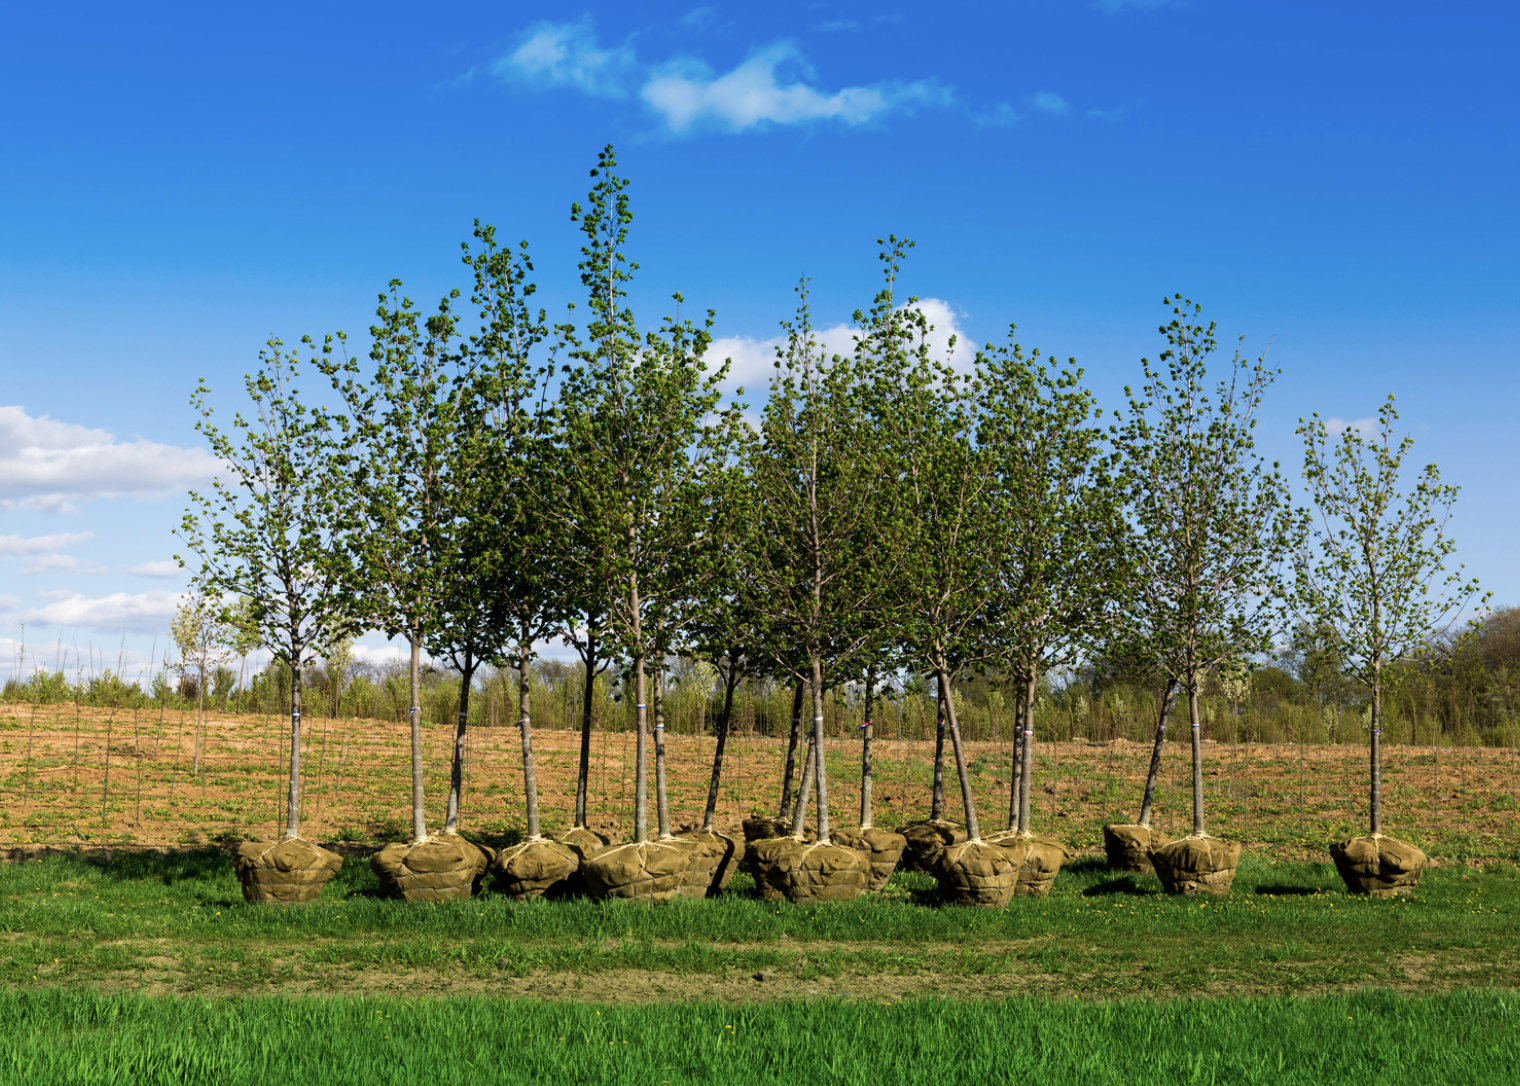 Trees waiting to be planted.